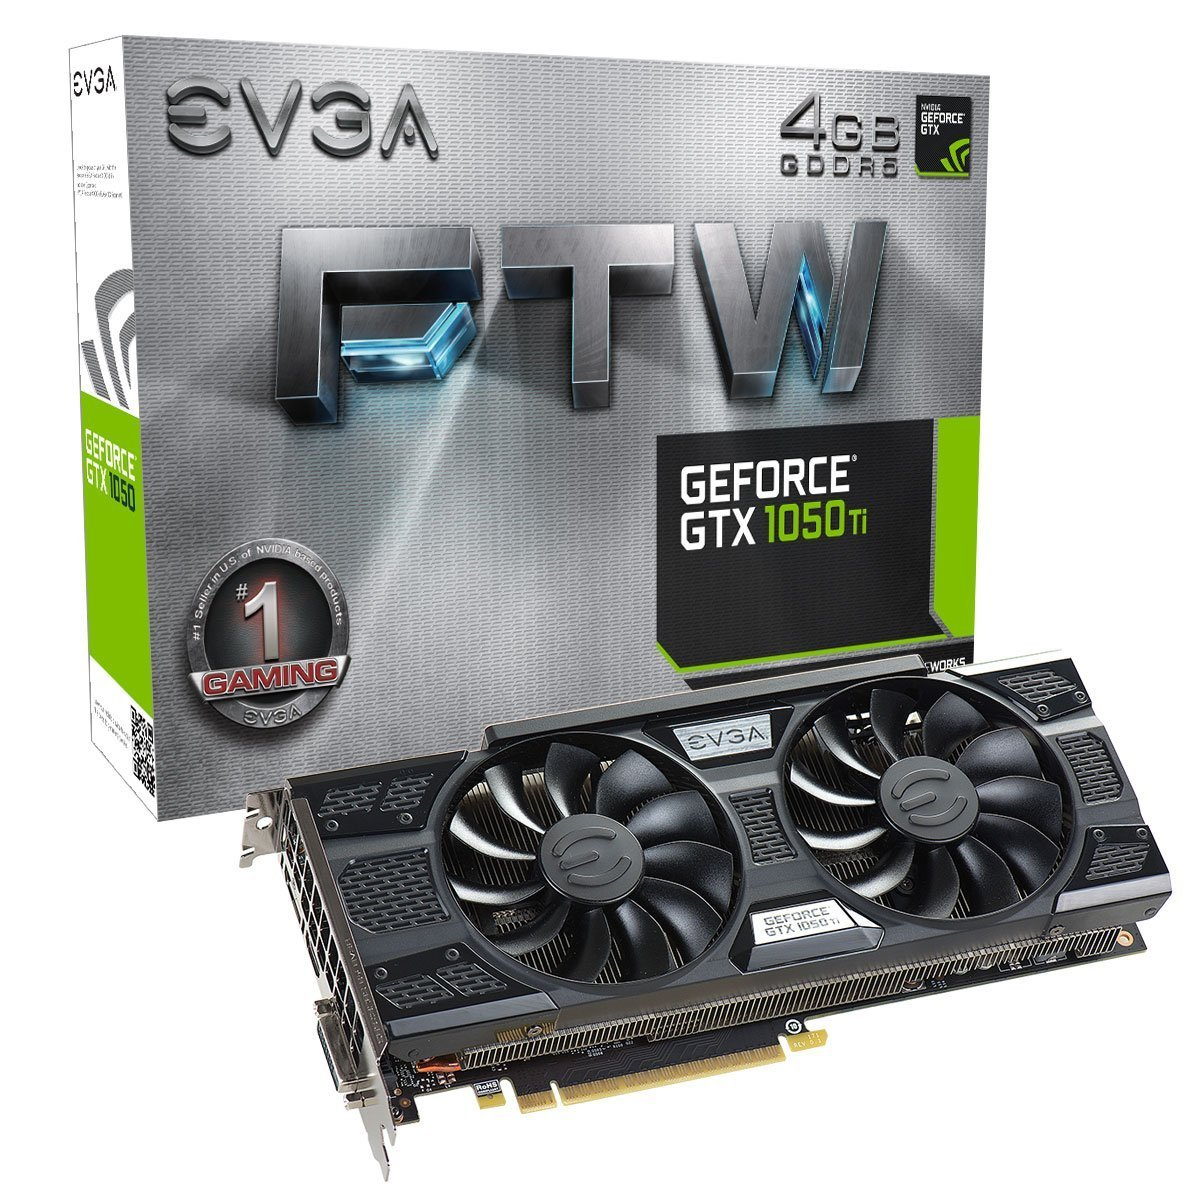 EVGA 04G-P4-6258-KR GeForce GTX 1050 Ti Graphics Card